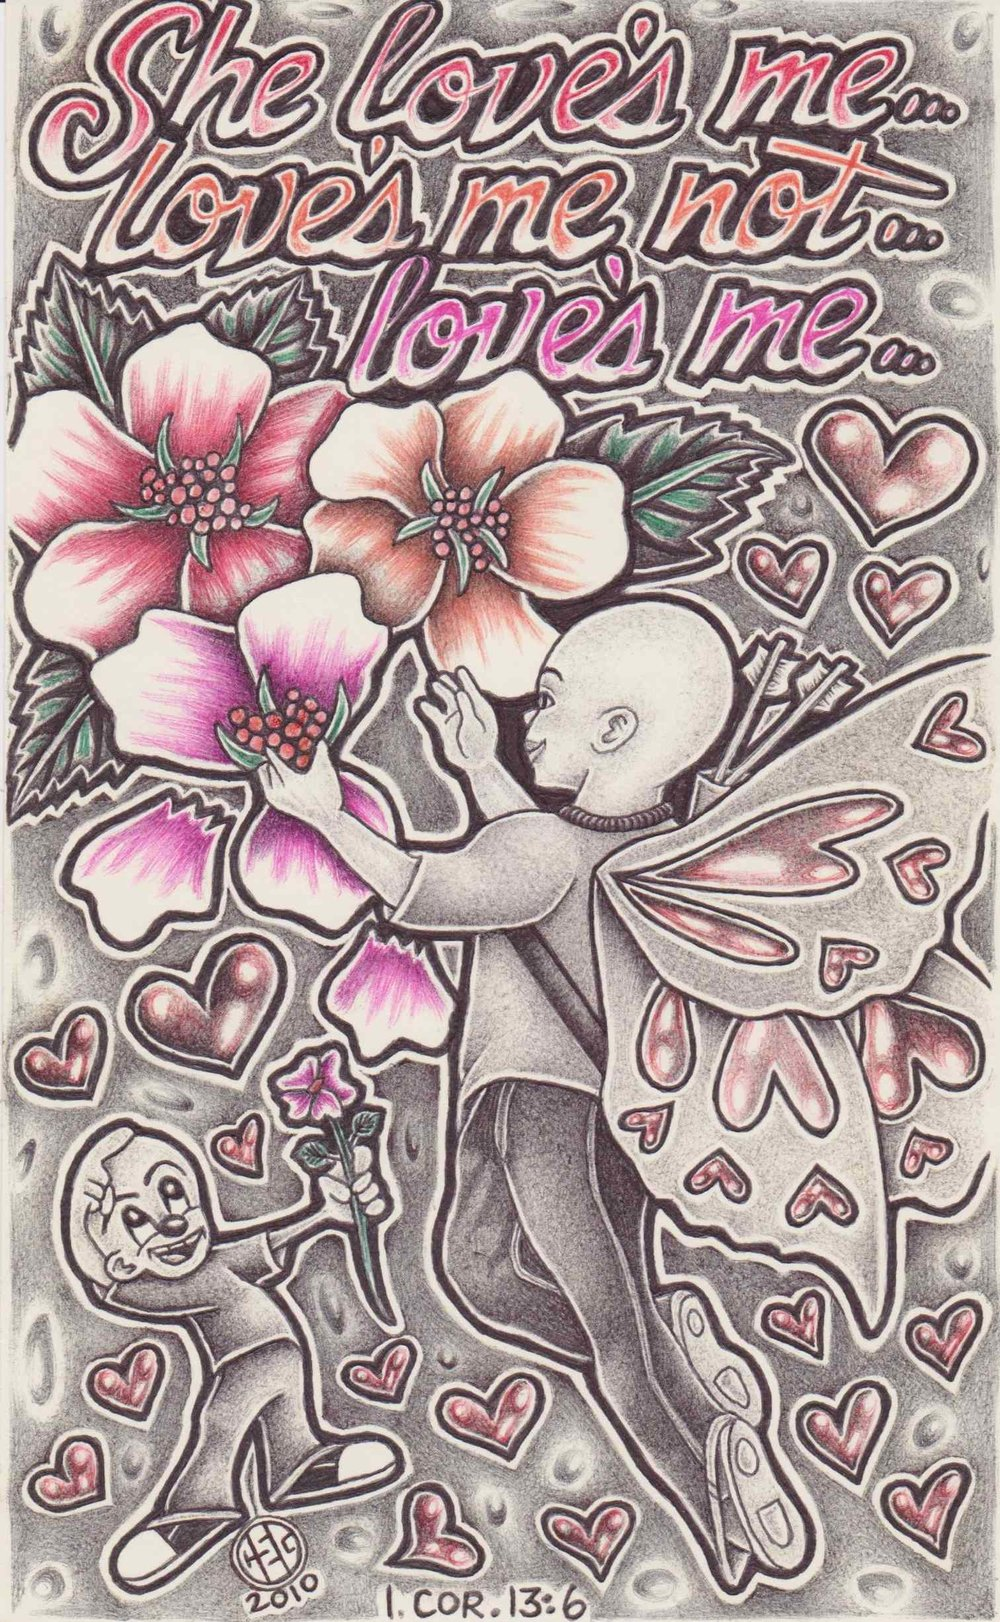 She loves me, loves me not...by Carlos E. Galindo.jpg